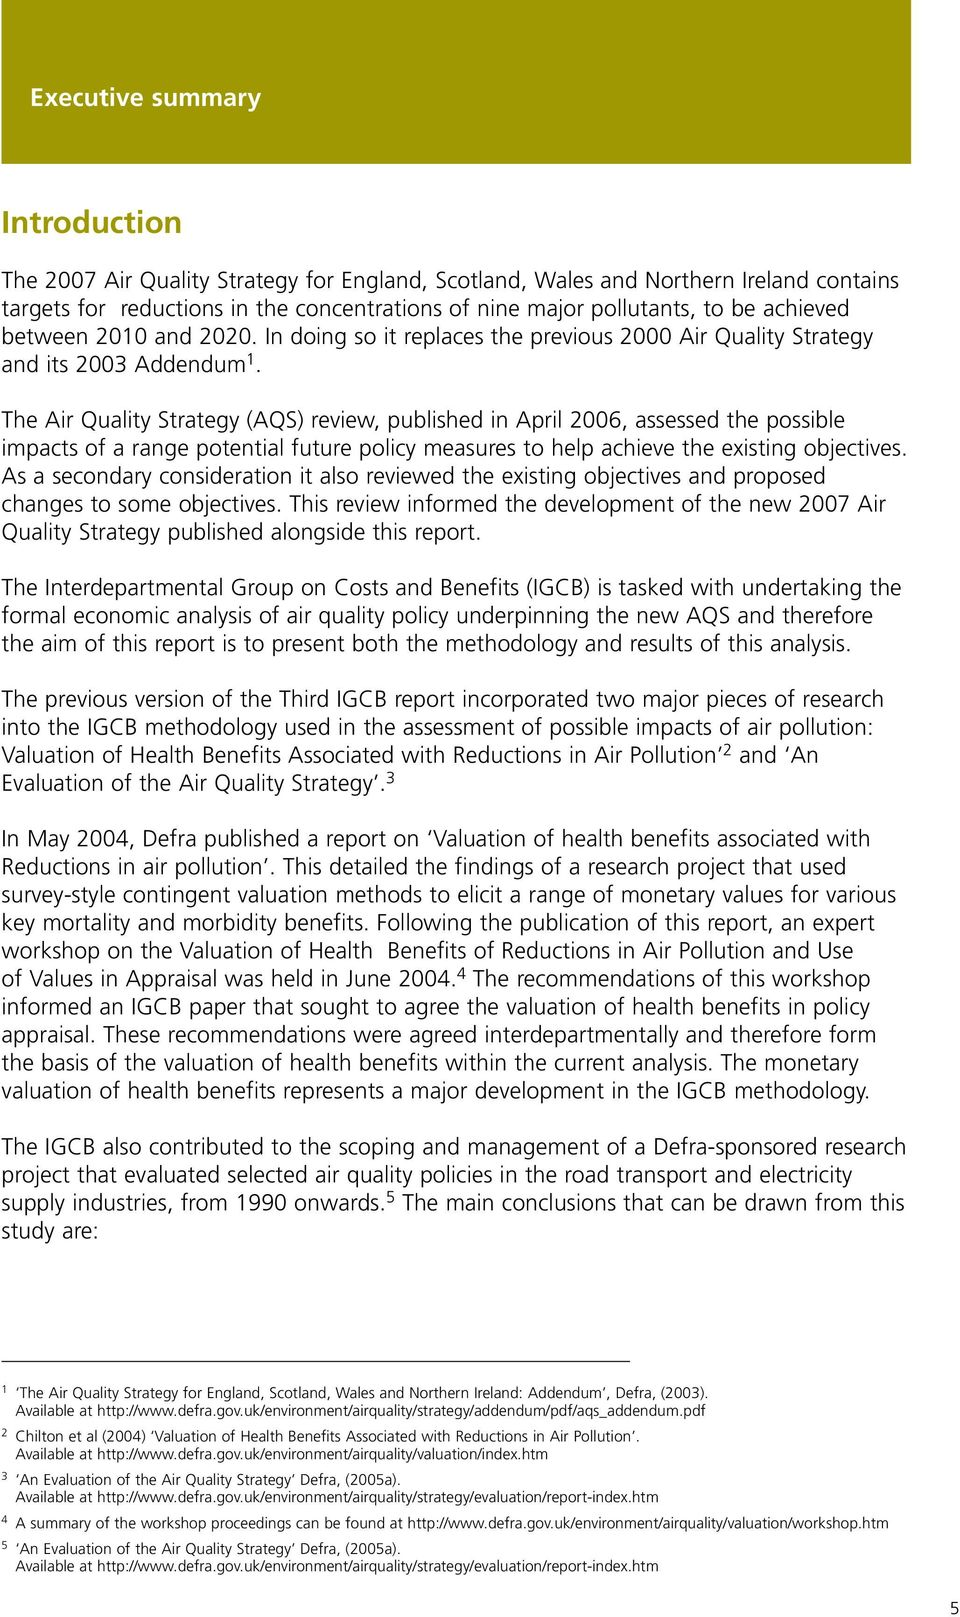 The Air Quality Strategy (AQS) review, published in April 2006, assessed the possible impacts of a range potential future policy measures to help achieve the existing objectives.